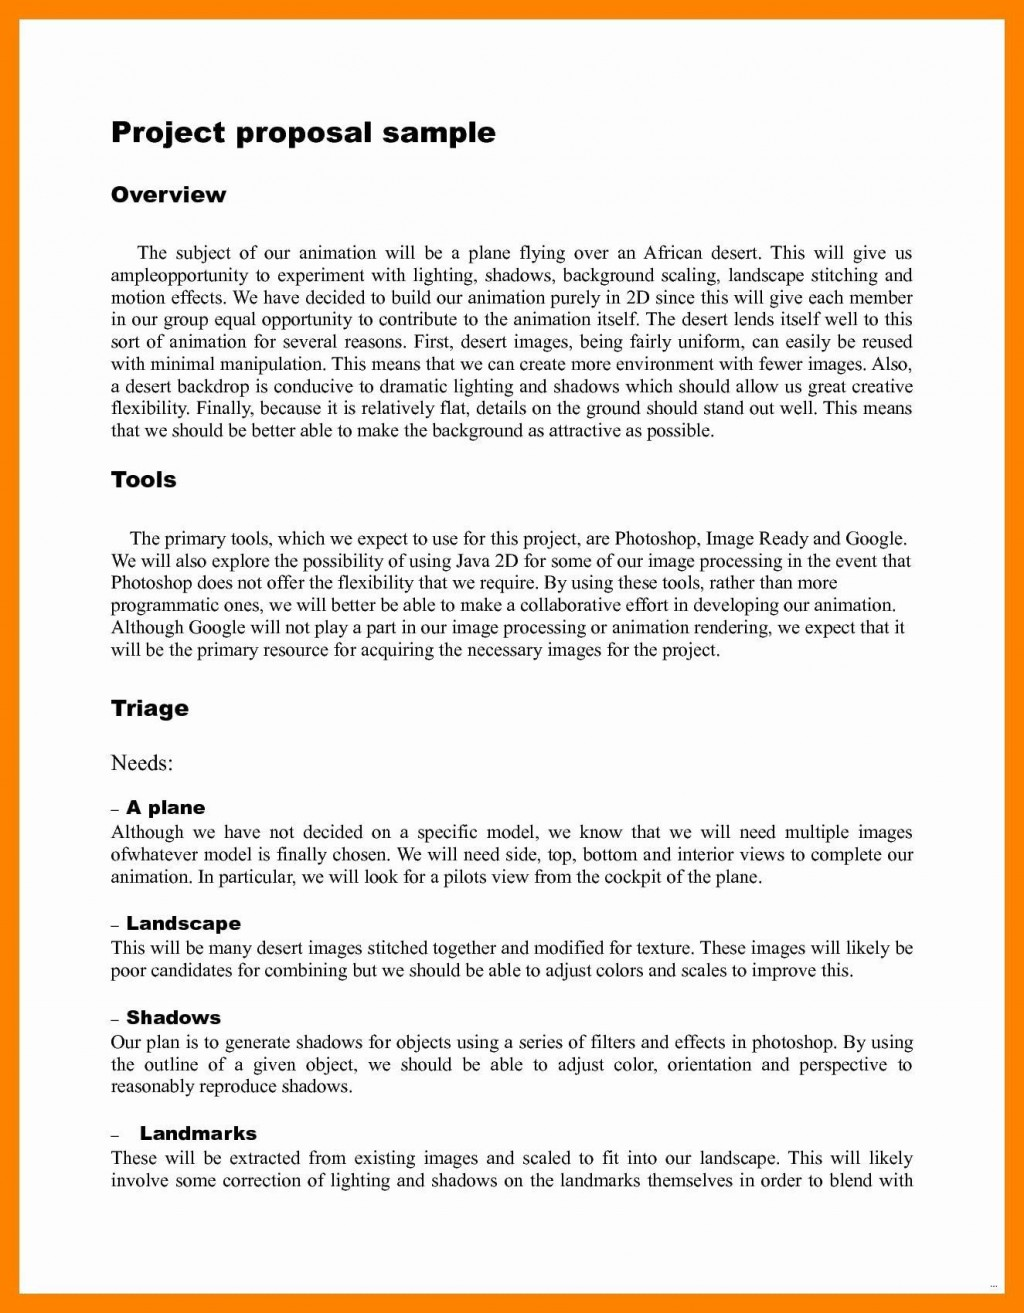 000 Wonderful Research Project Proposal Sample Pdf High Resolution  InvestigatoryLarge